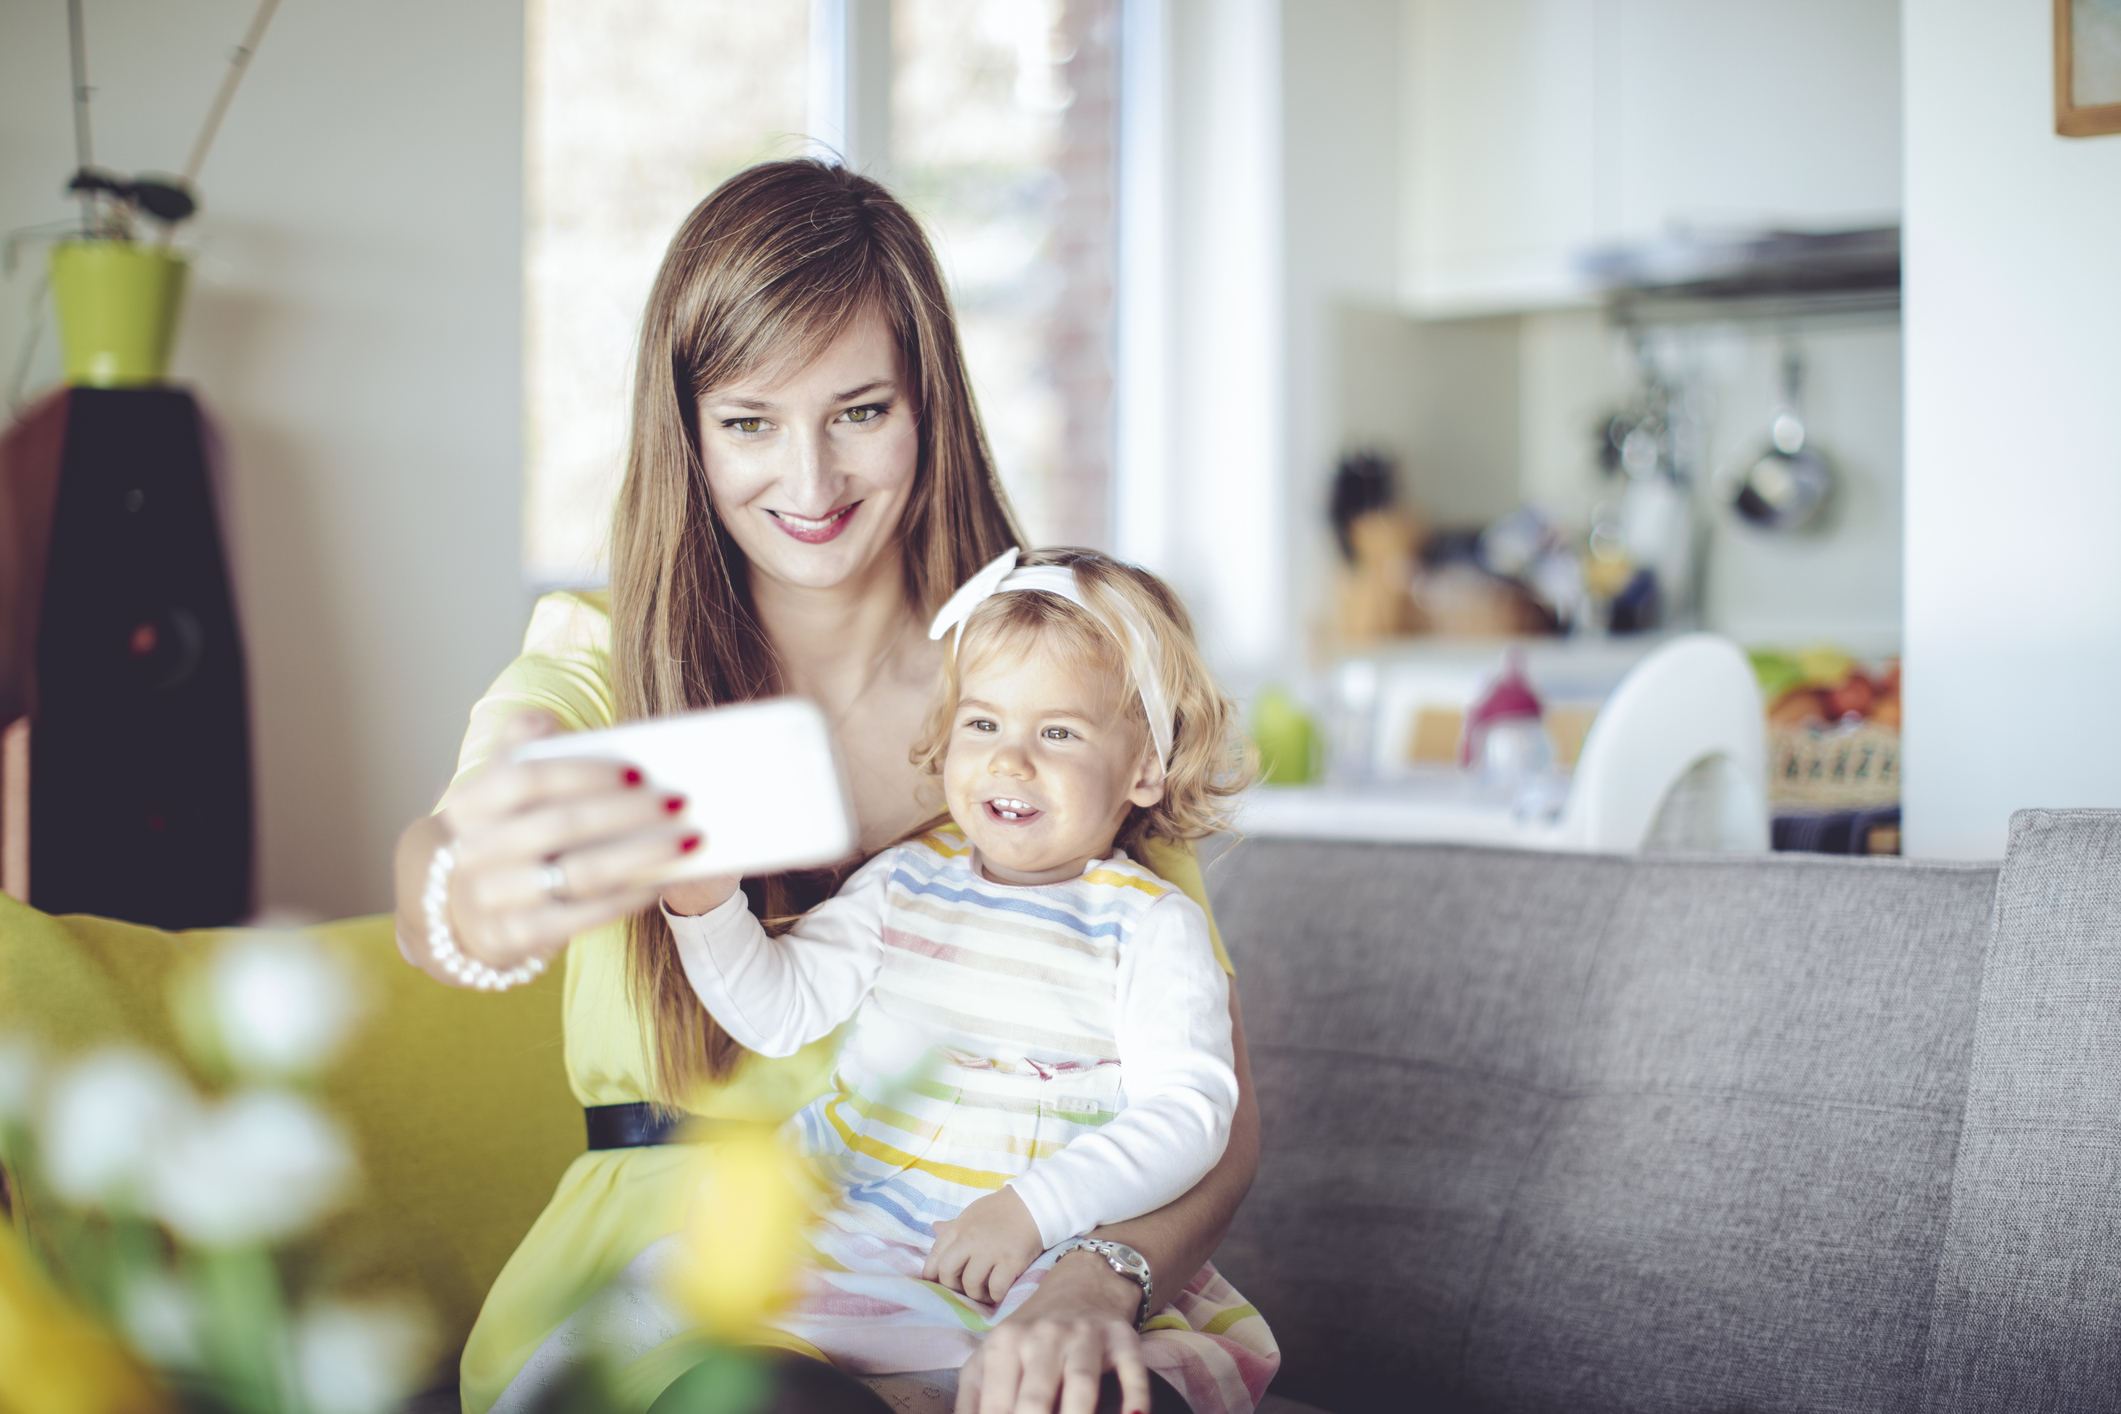 5 Realistic Work at Home Jobs for Millennial Moms